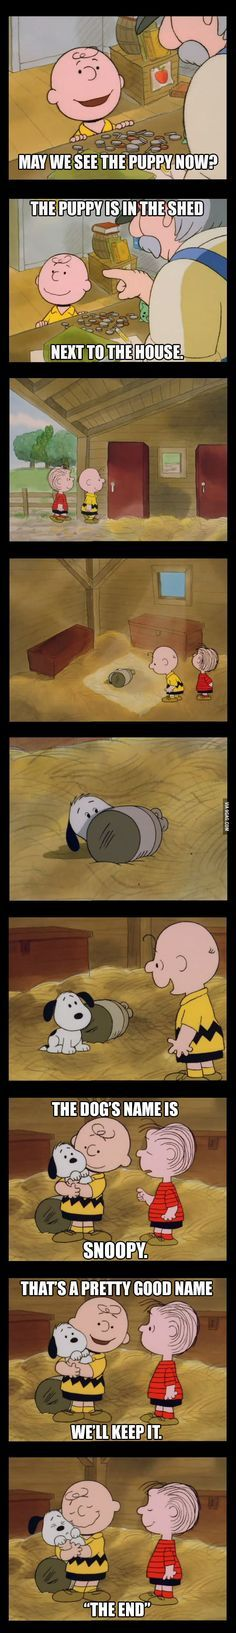 Epic moment of childhood. Must read for Snoopy fans! - Epic moment of childhood. Must read for Snoopy fans!